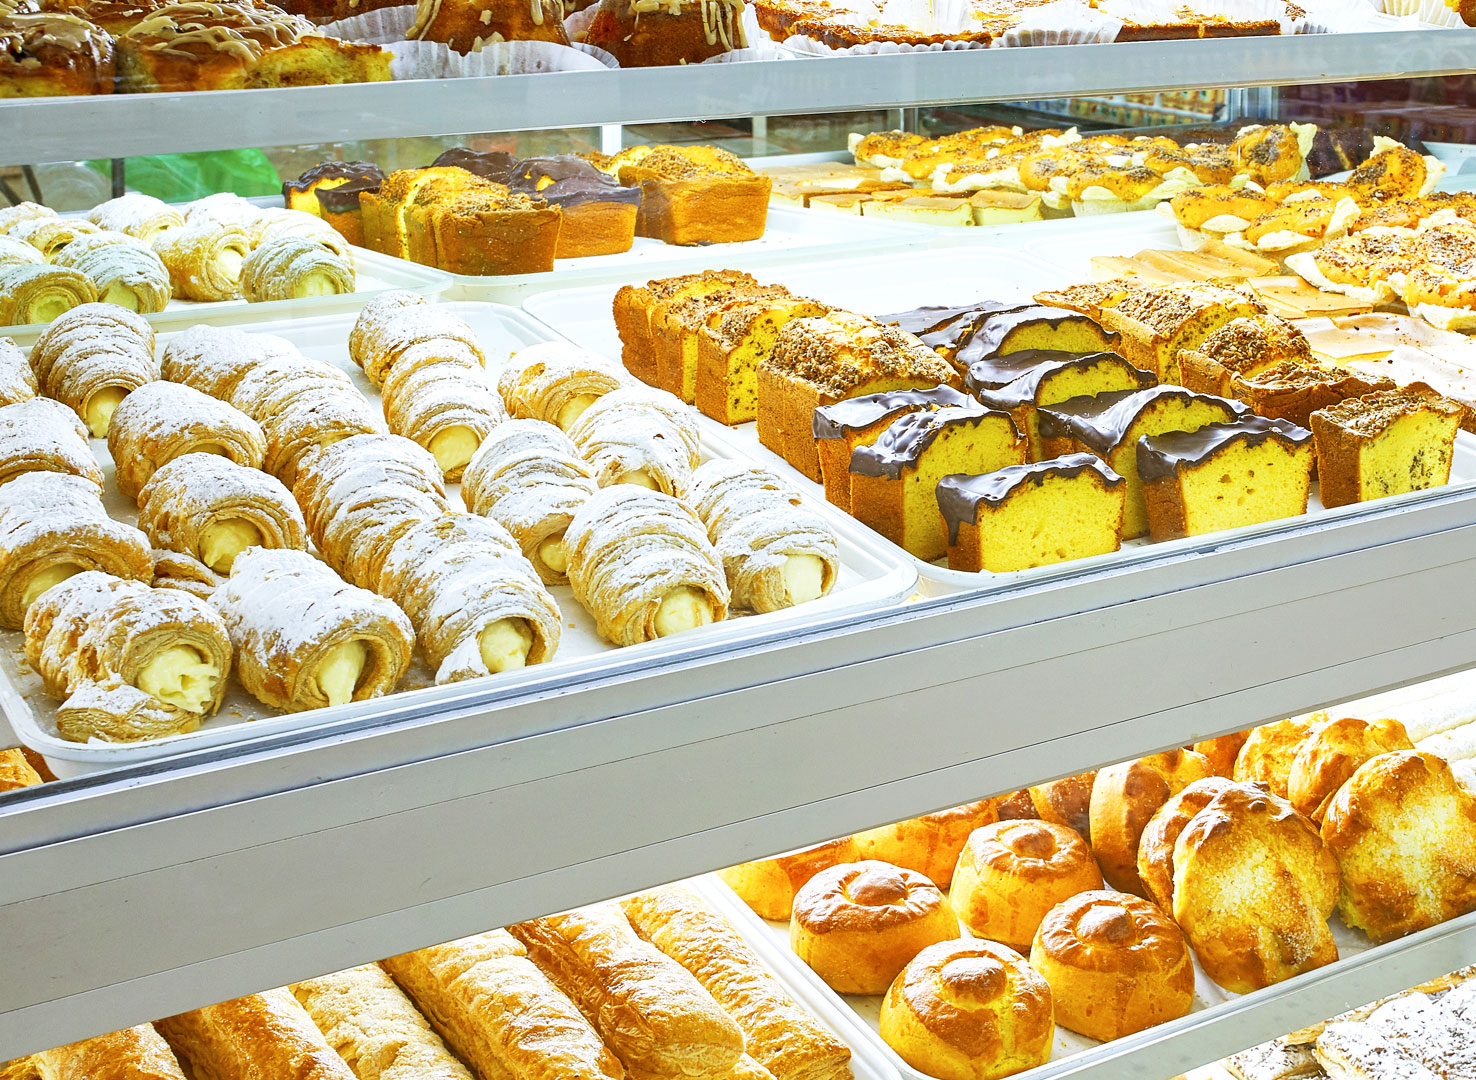 Grocery Store With Fresh In Store Bakery Food Market La Chiquita